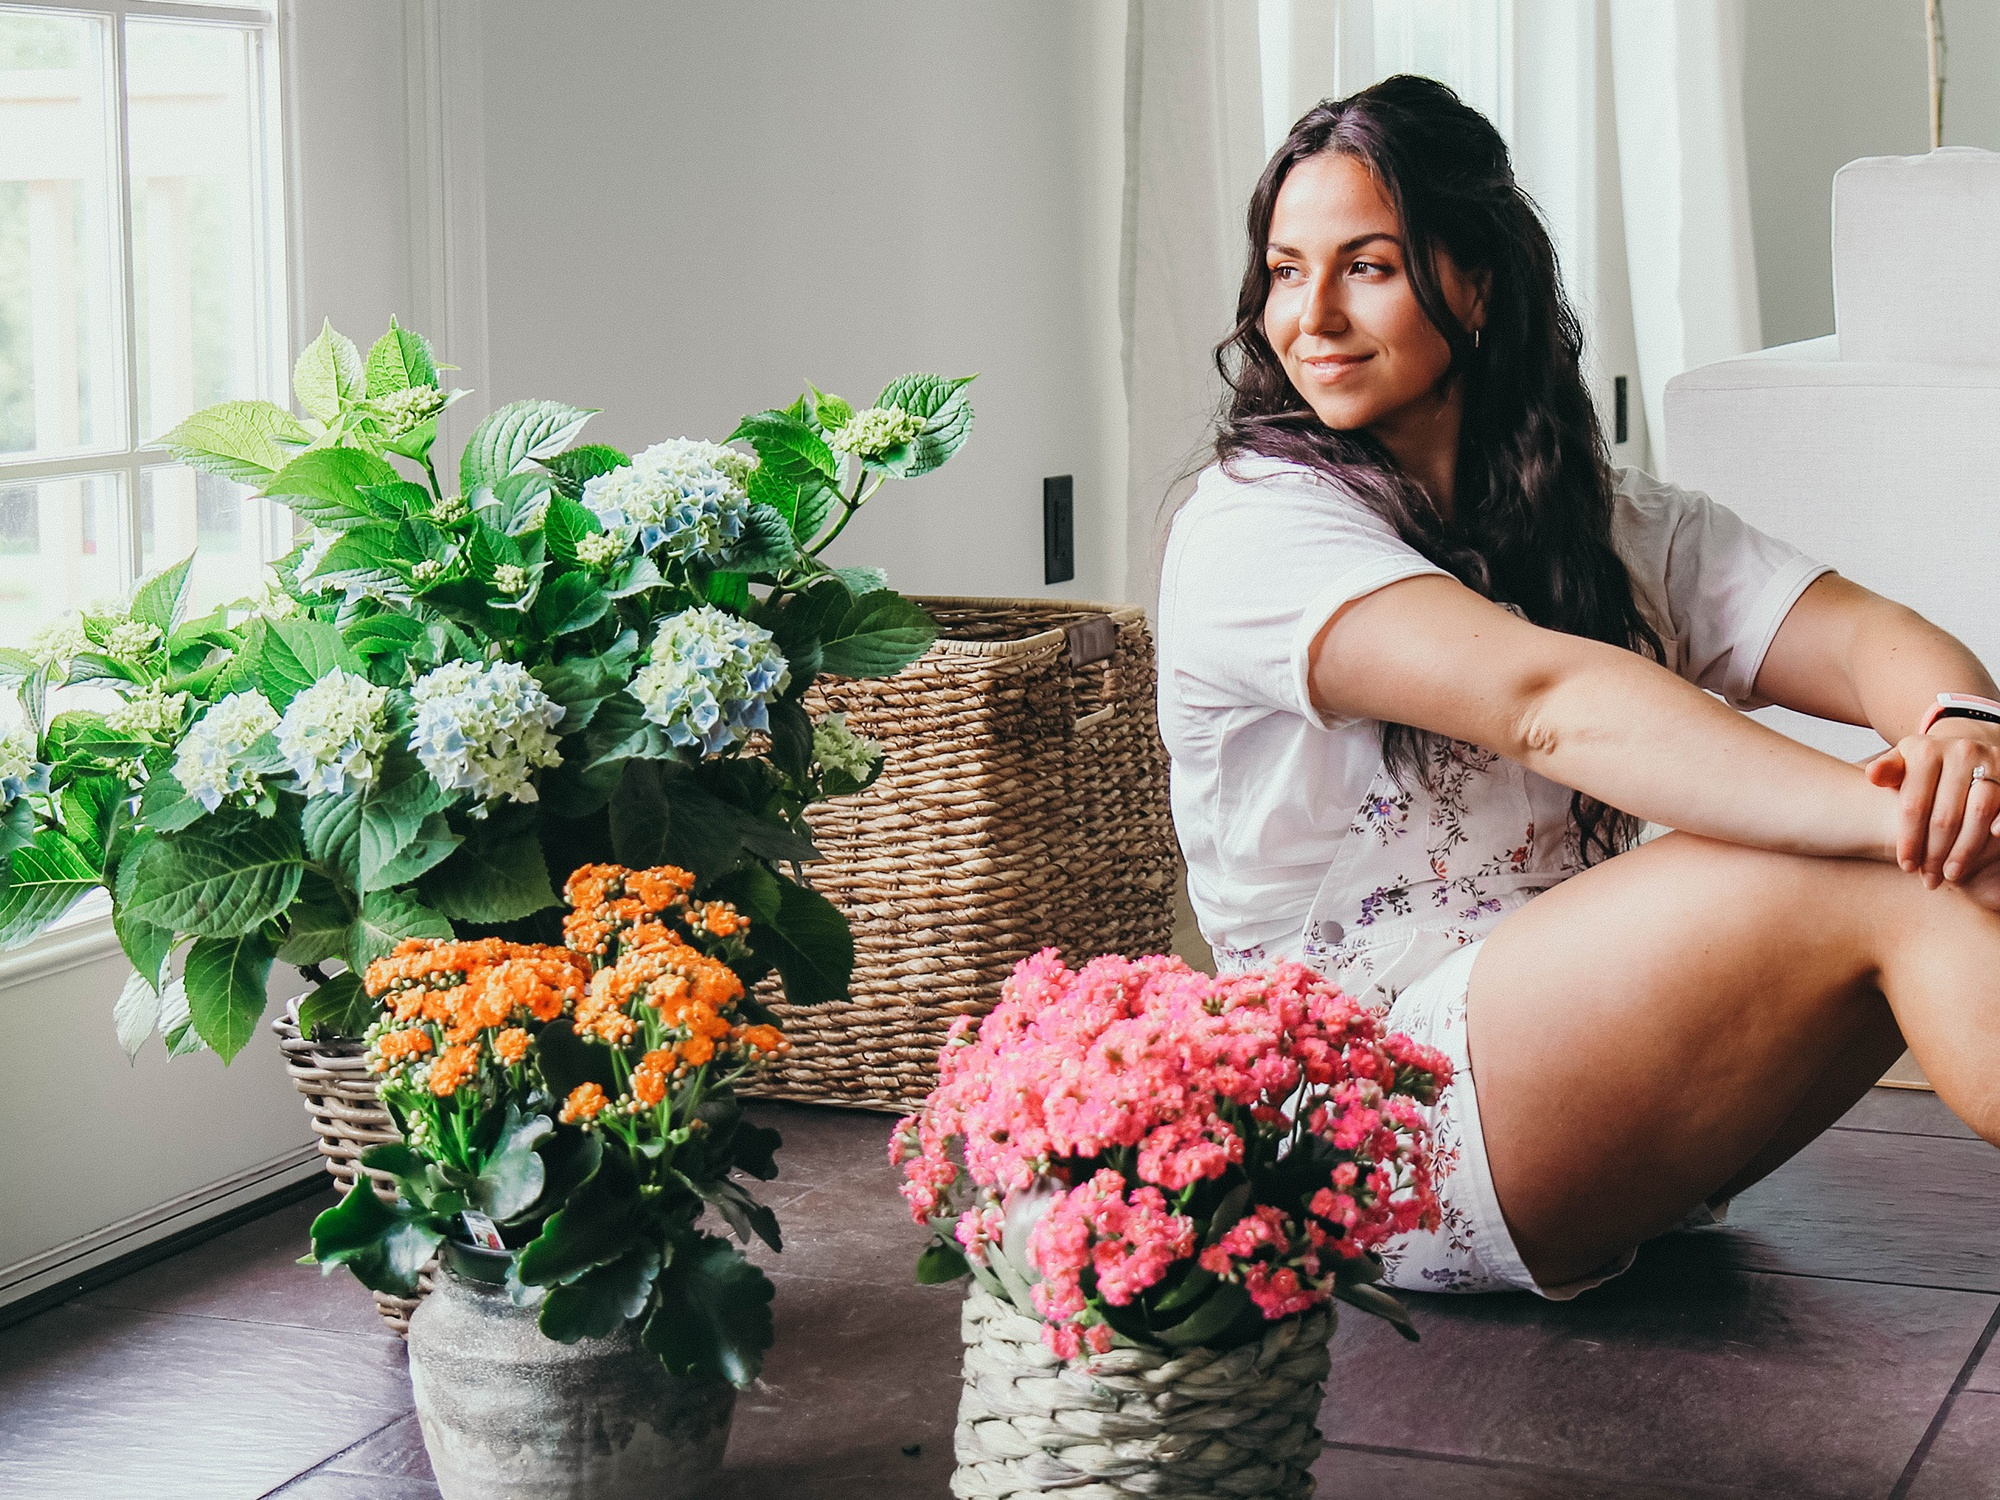 Haley Cairo and flowering plants